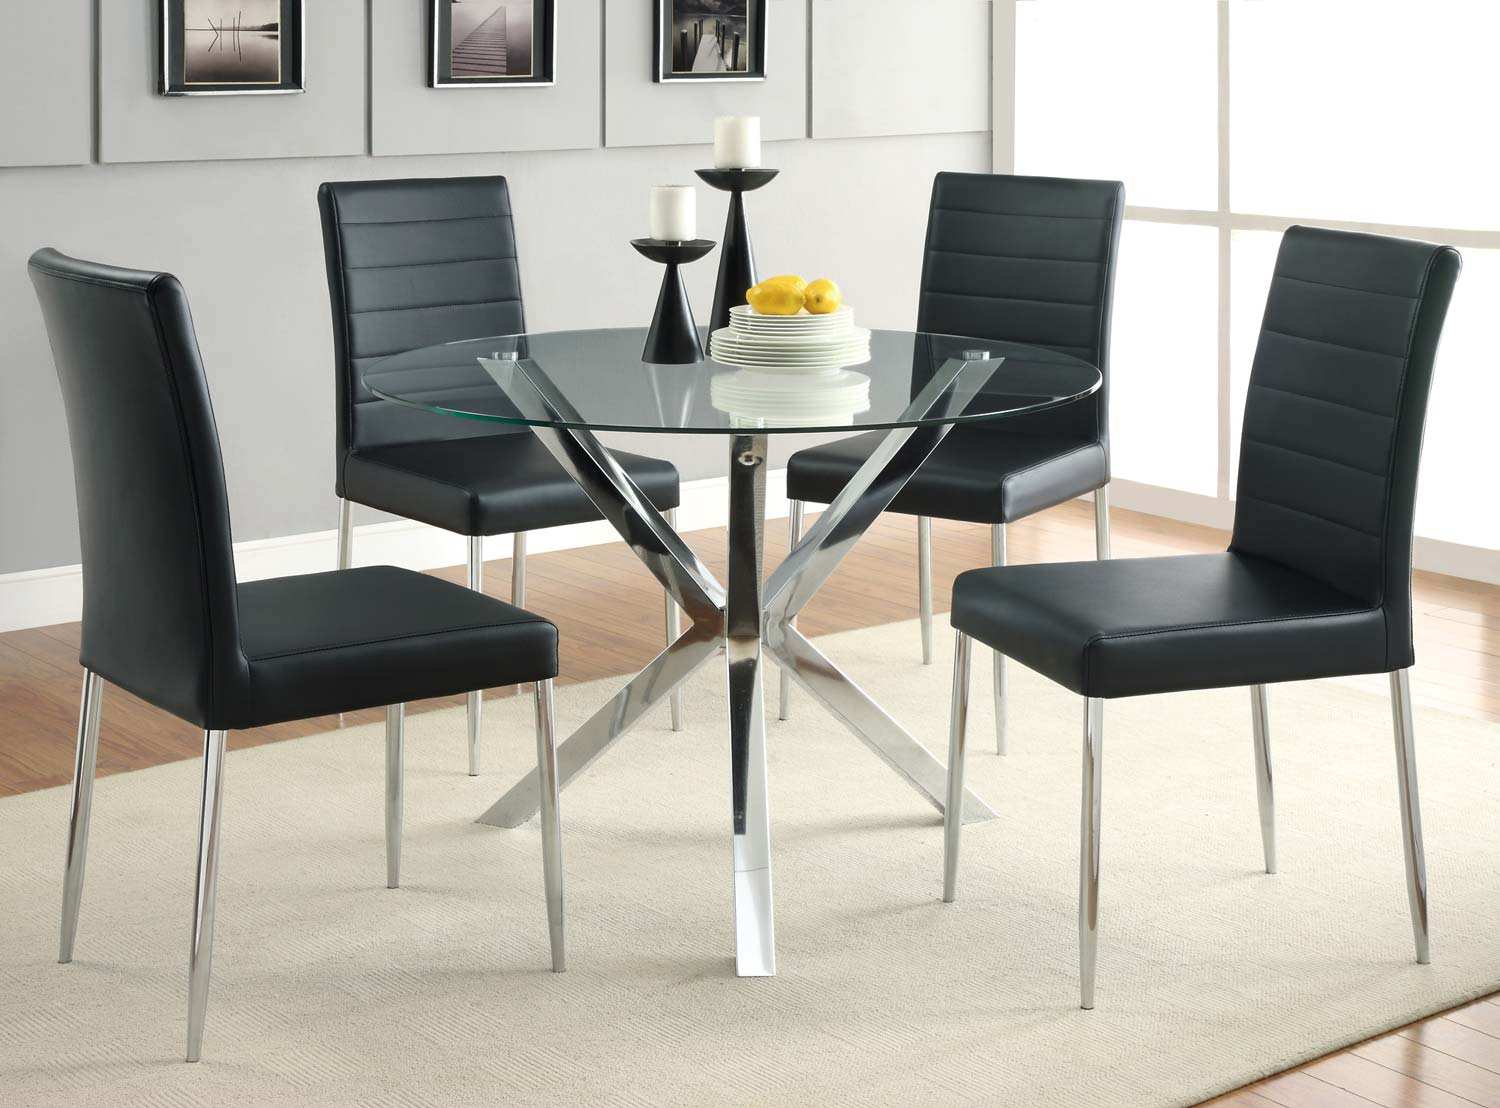 Coaster Vance Round Glass Dining Set - Black Chair